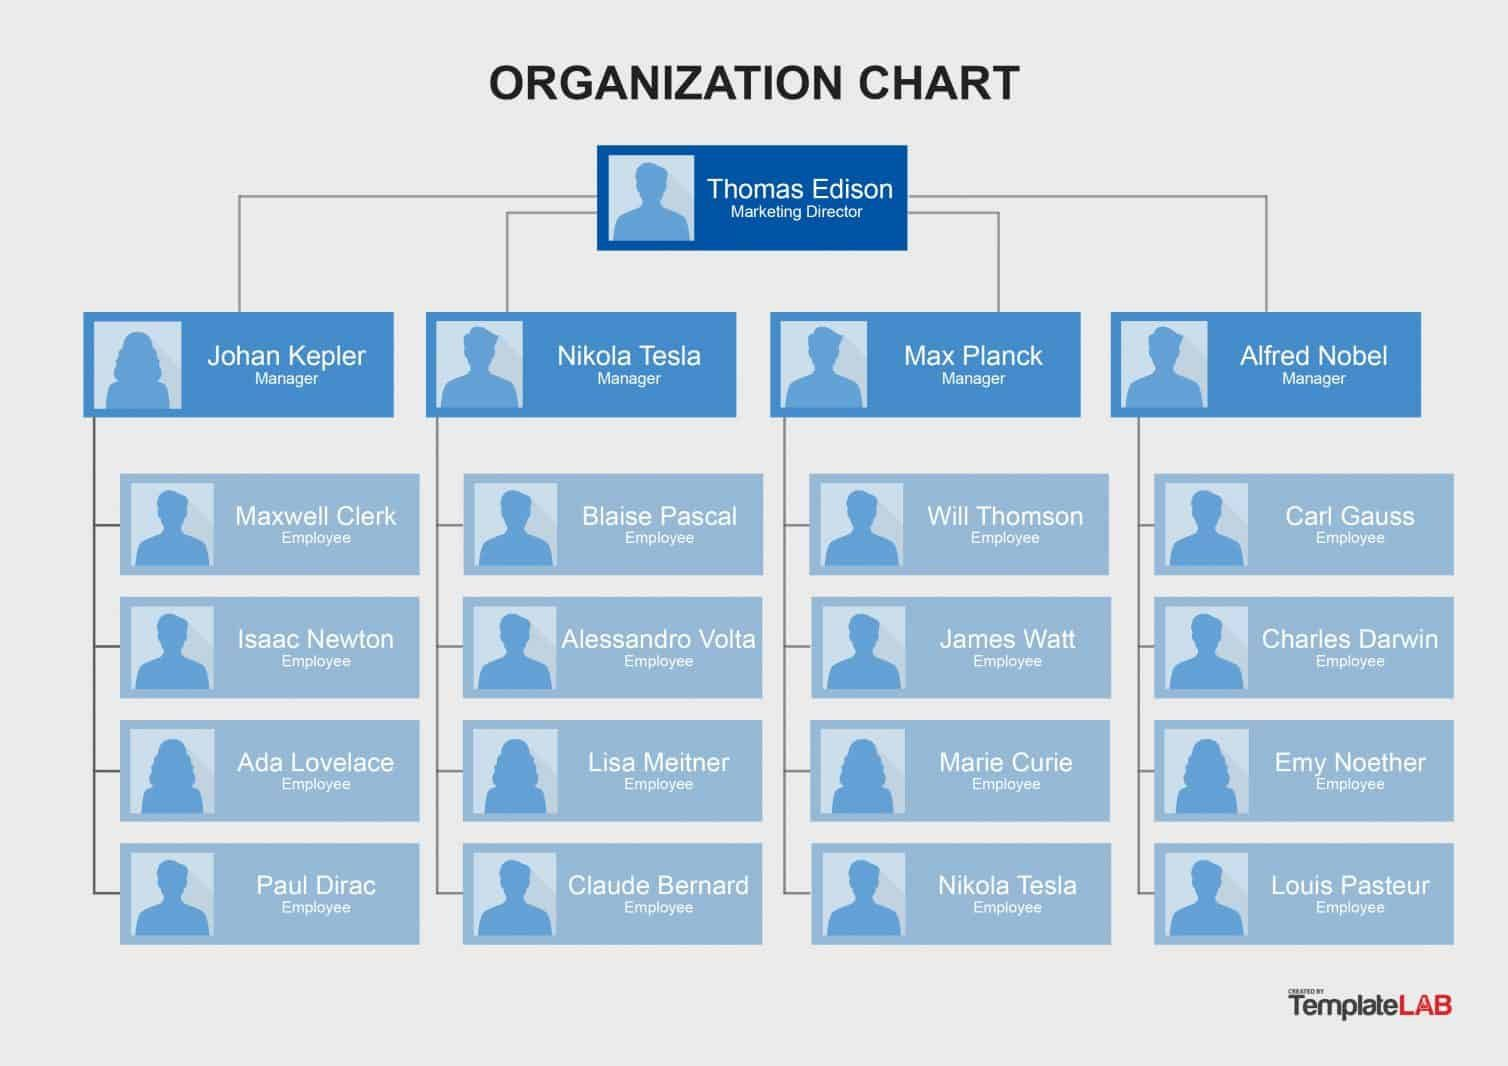 009 Incredible Org Chart Template Excel High Def  Free DownloadFull